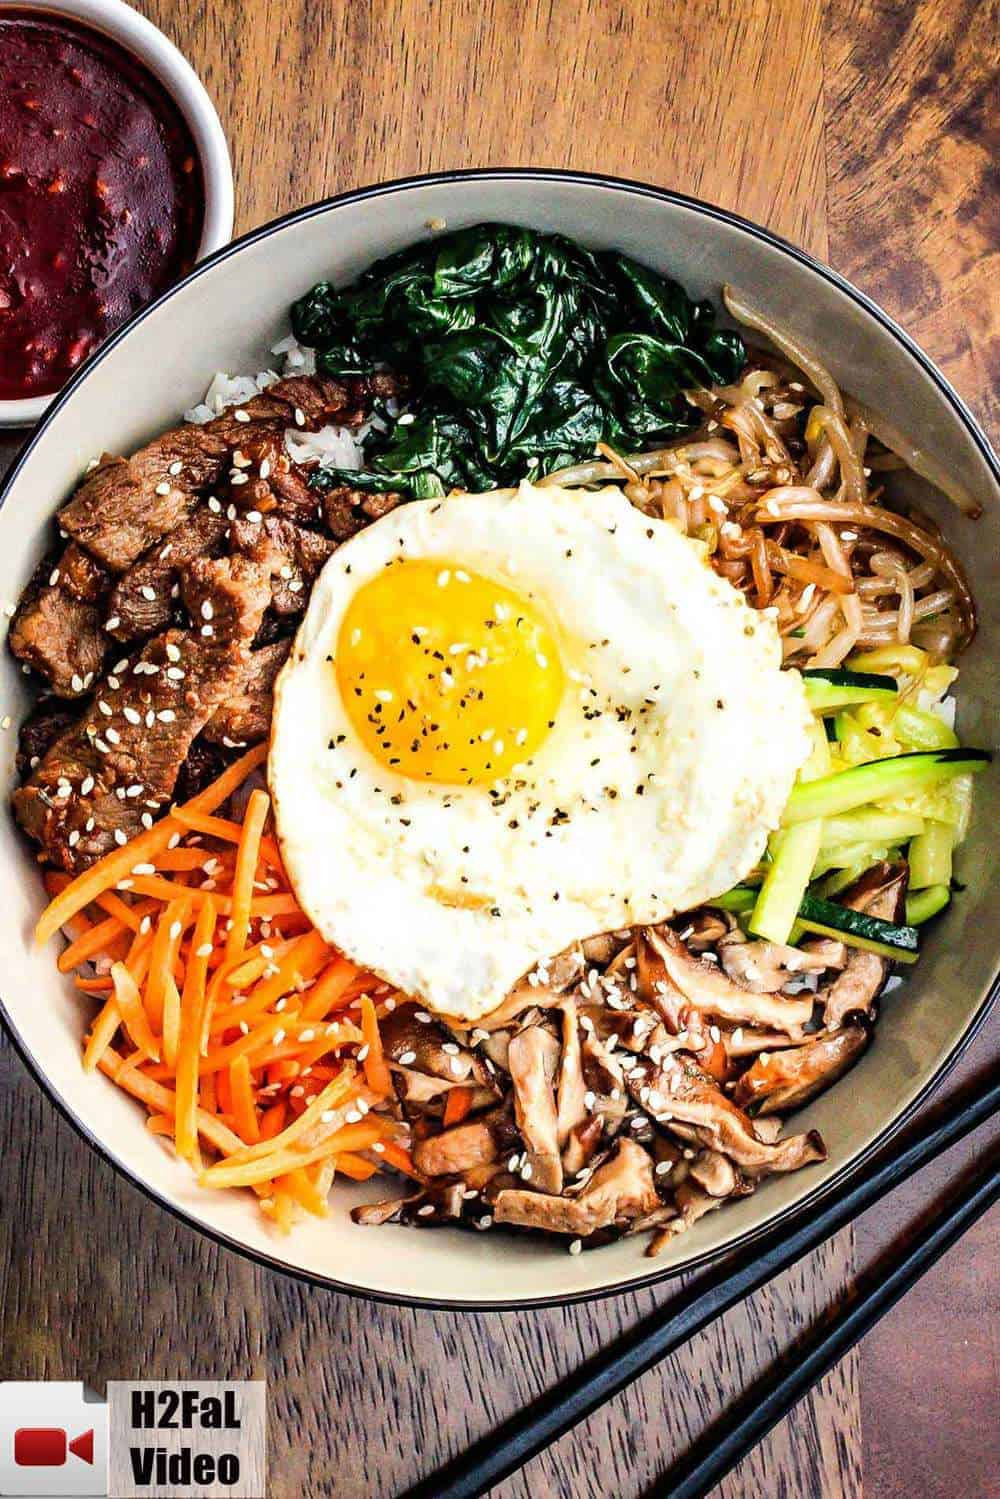 Authentic bibimbap in a bowl next to chop sticks